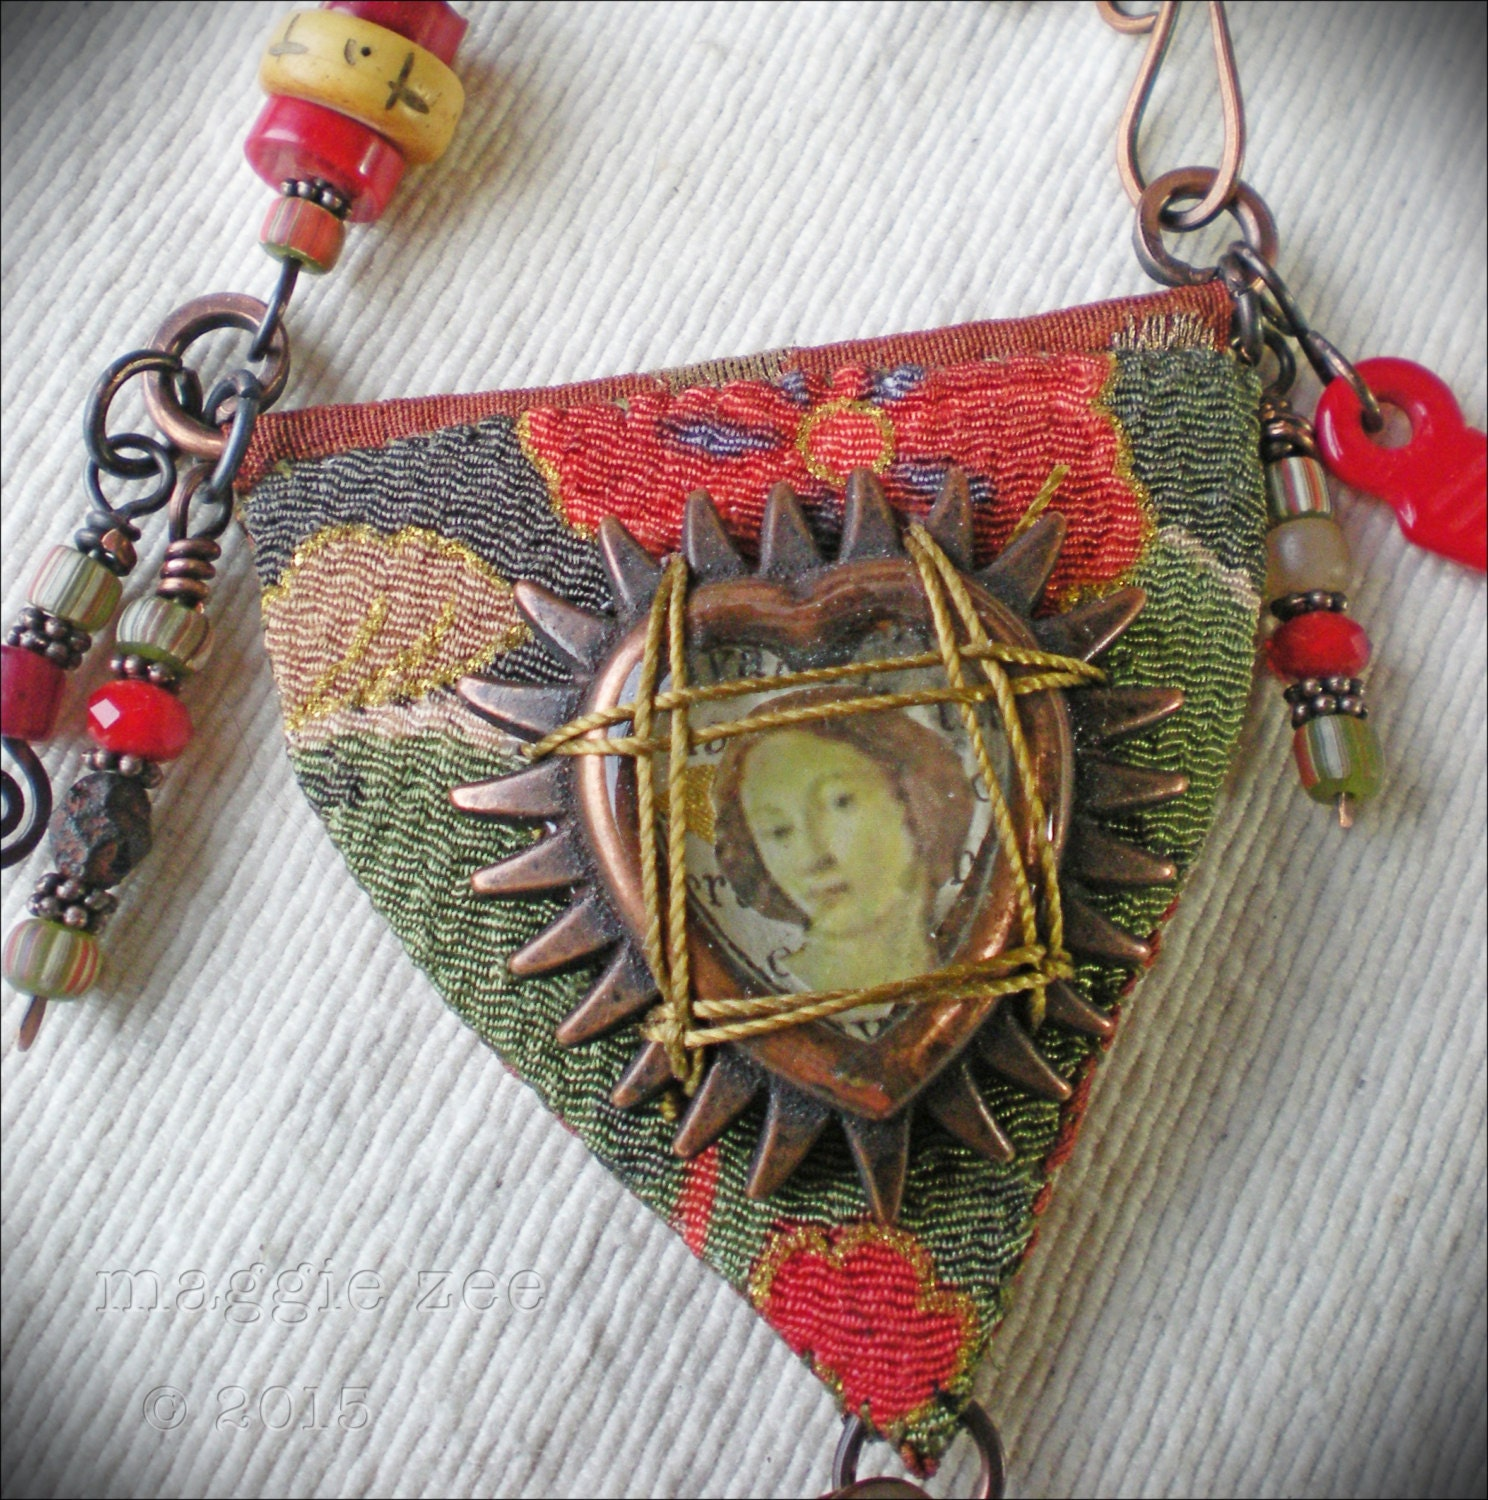 Binding Spell Protective Amulet Necklace